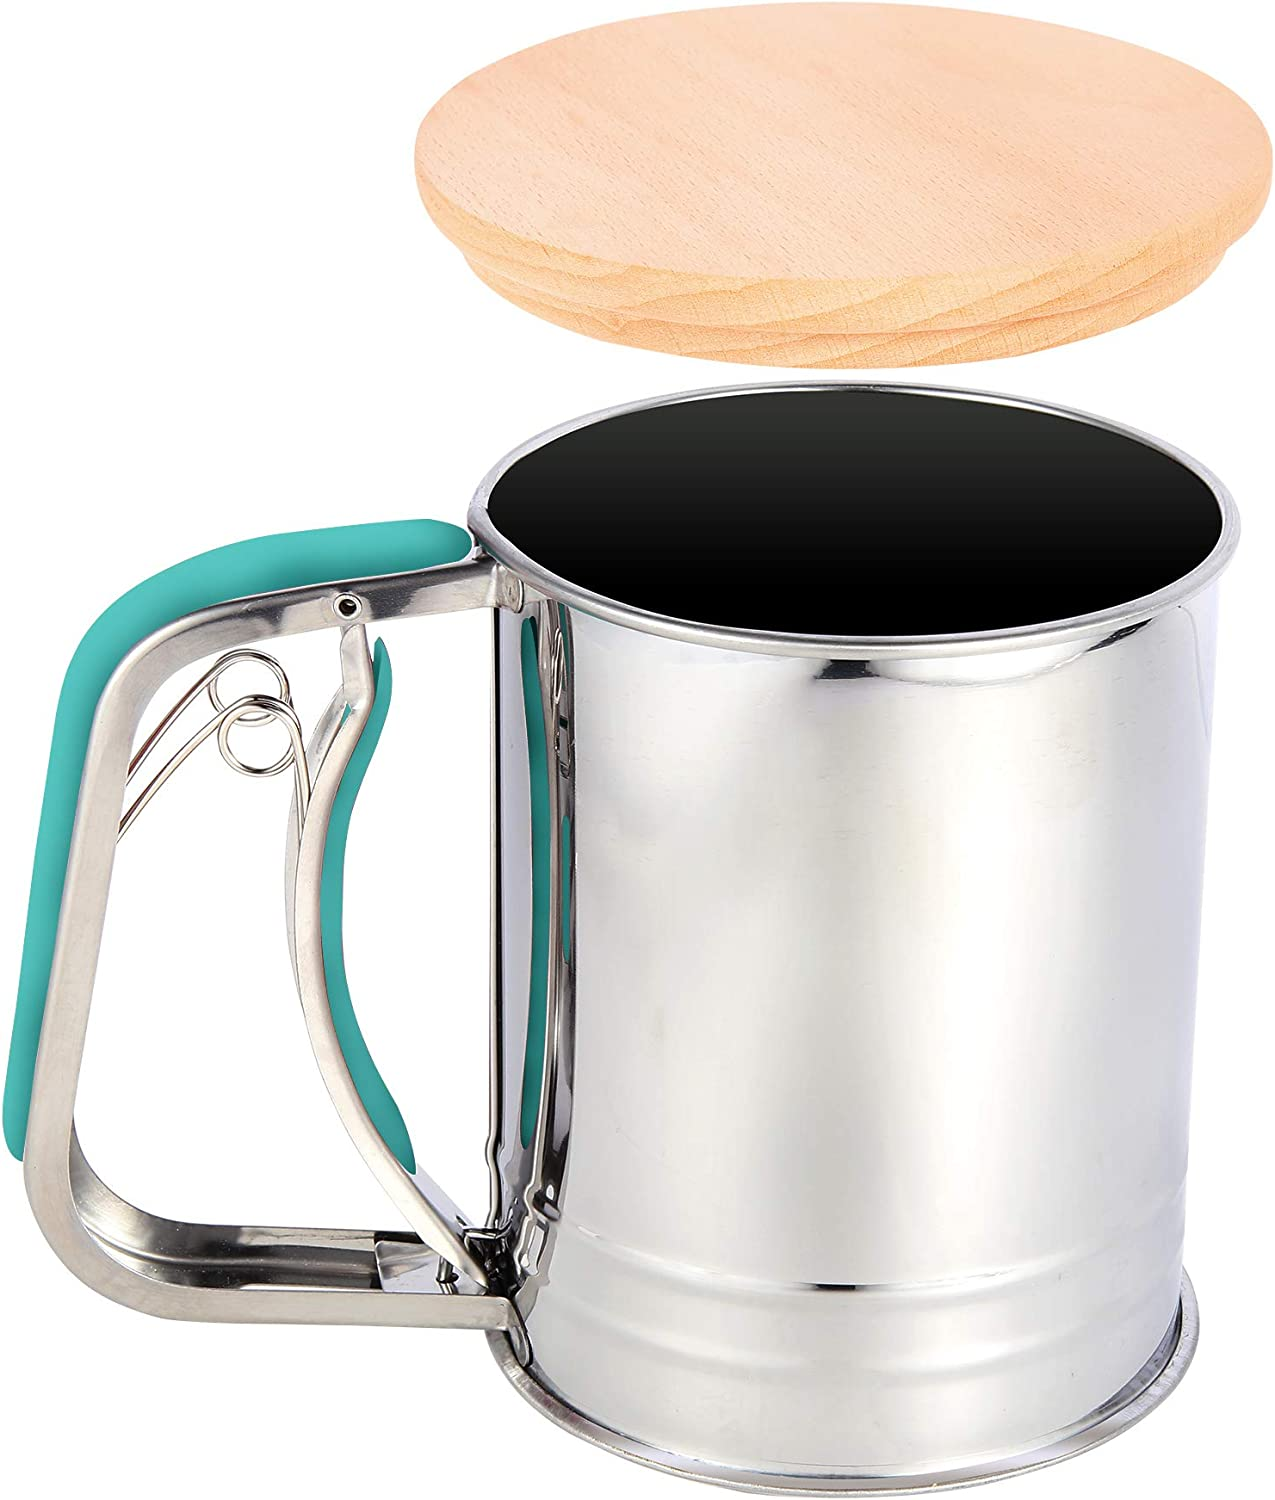 Baltimore Mall YongLy 3 Cup Flour Sifter Baking Wholesale Stainless with Steel Seive